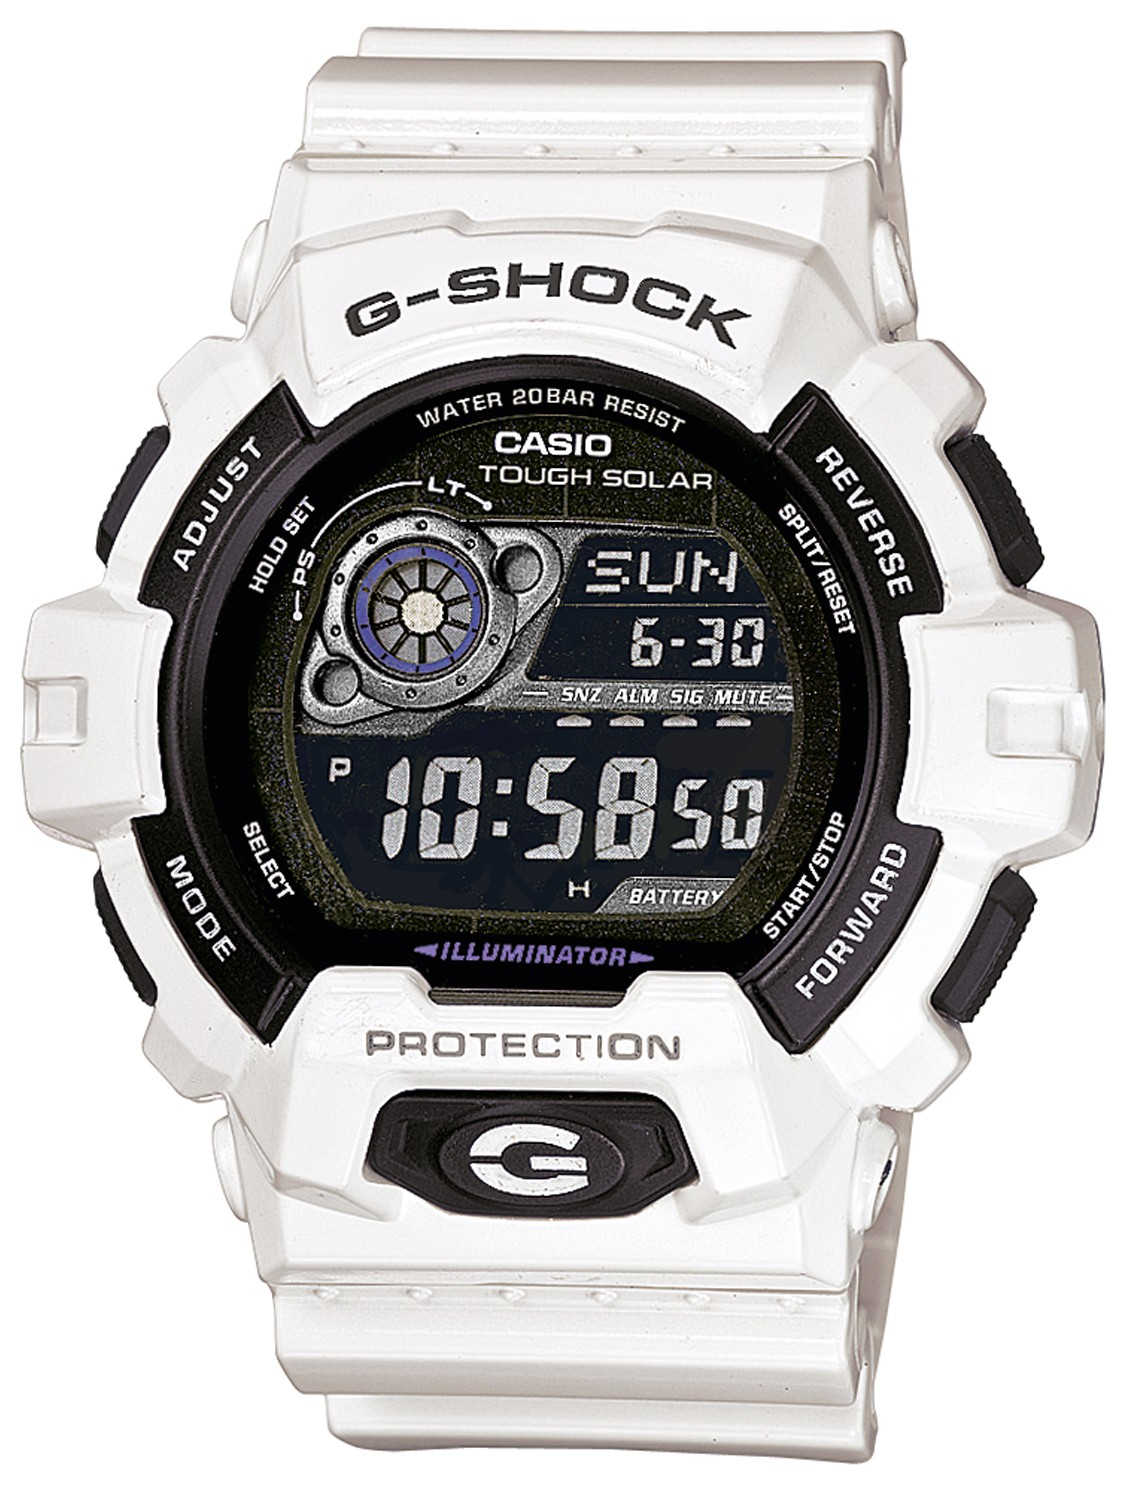 Casio Brand Watches And Price